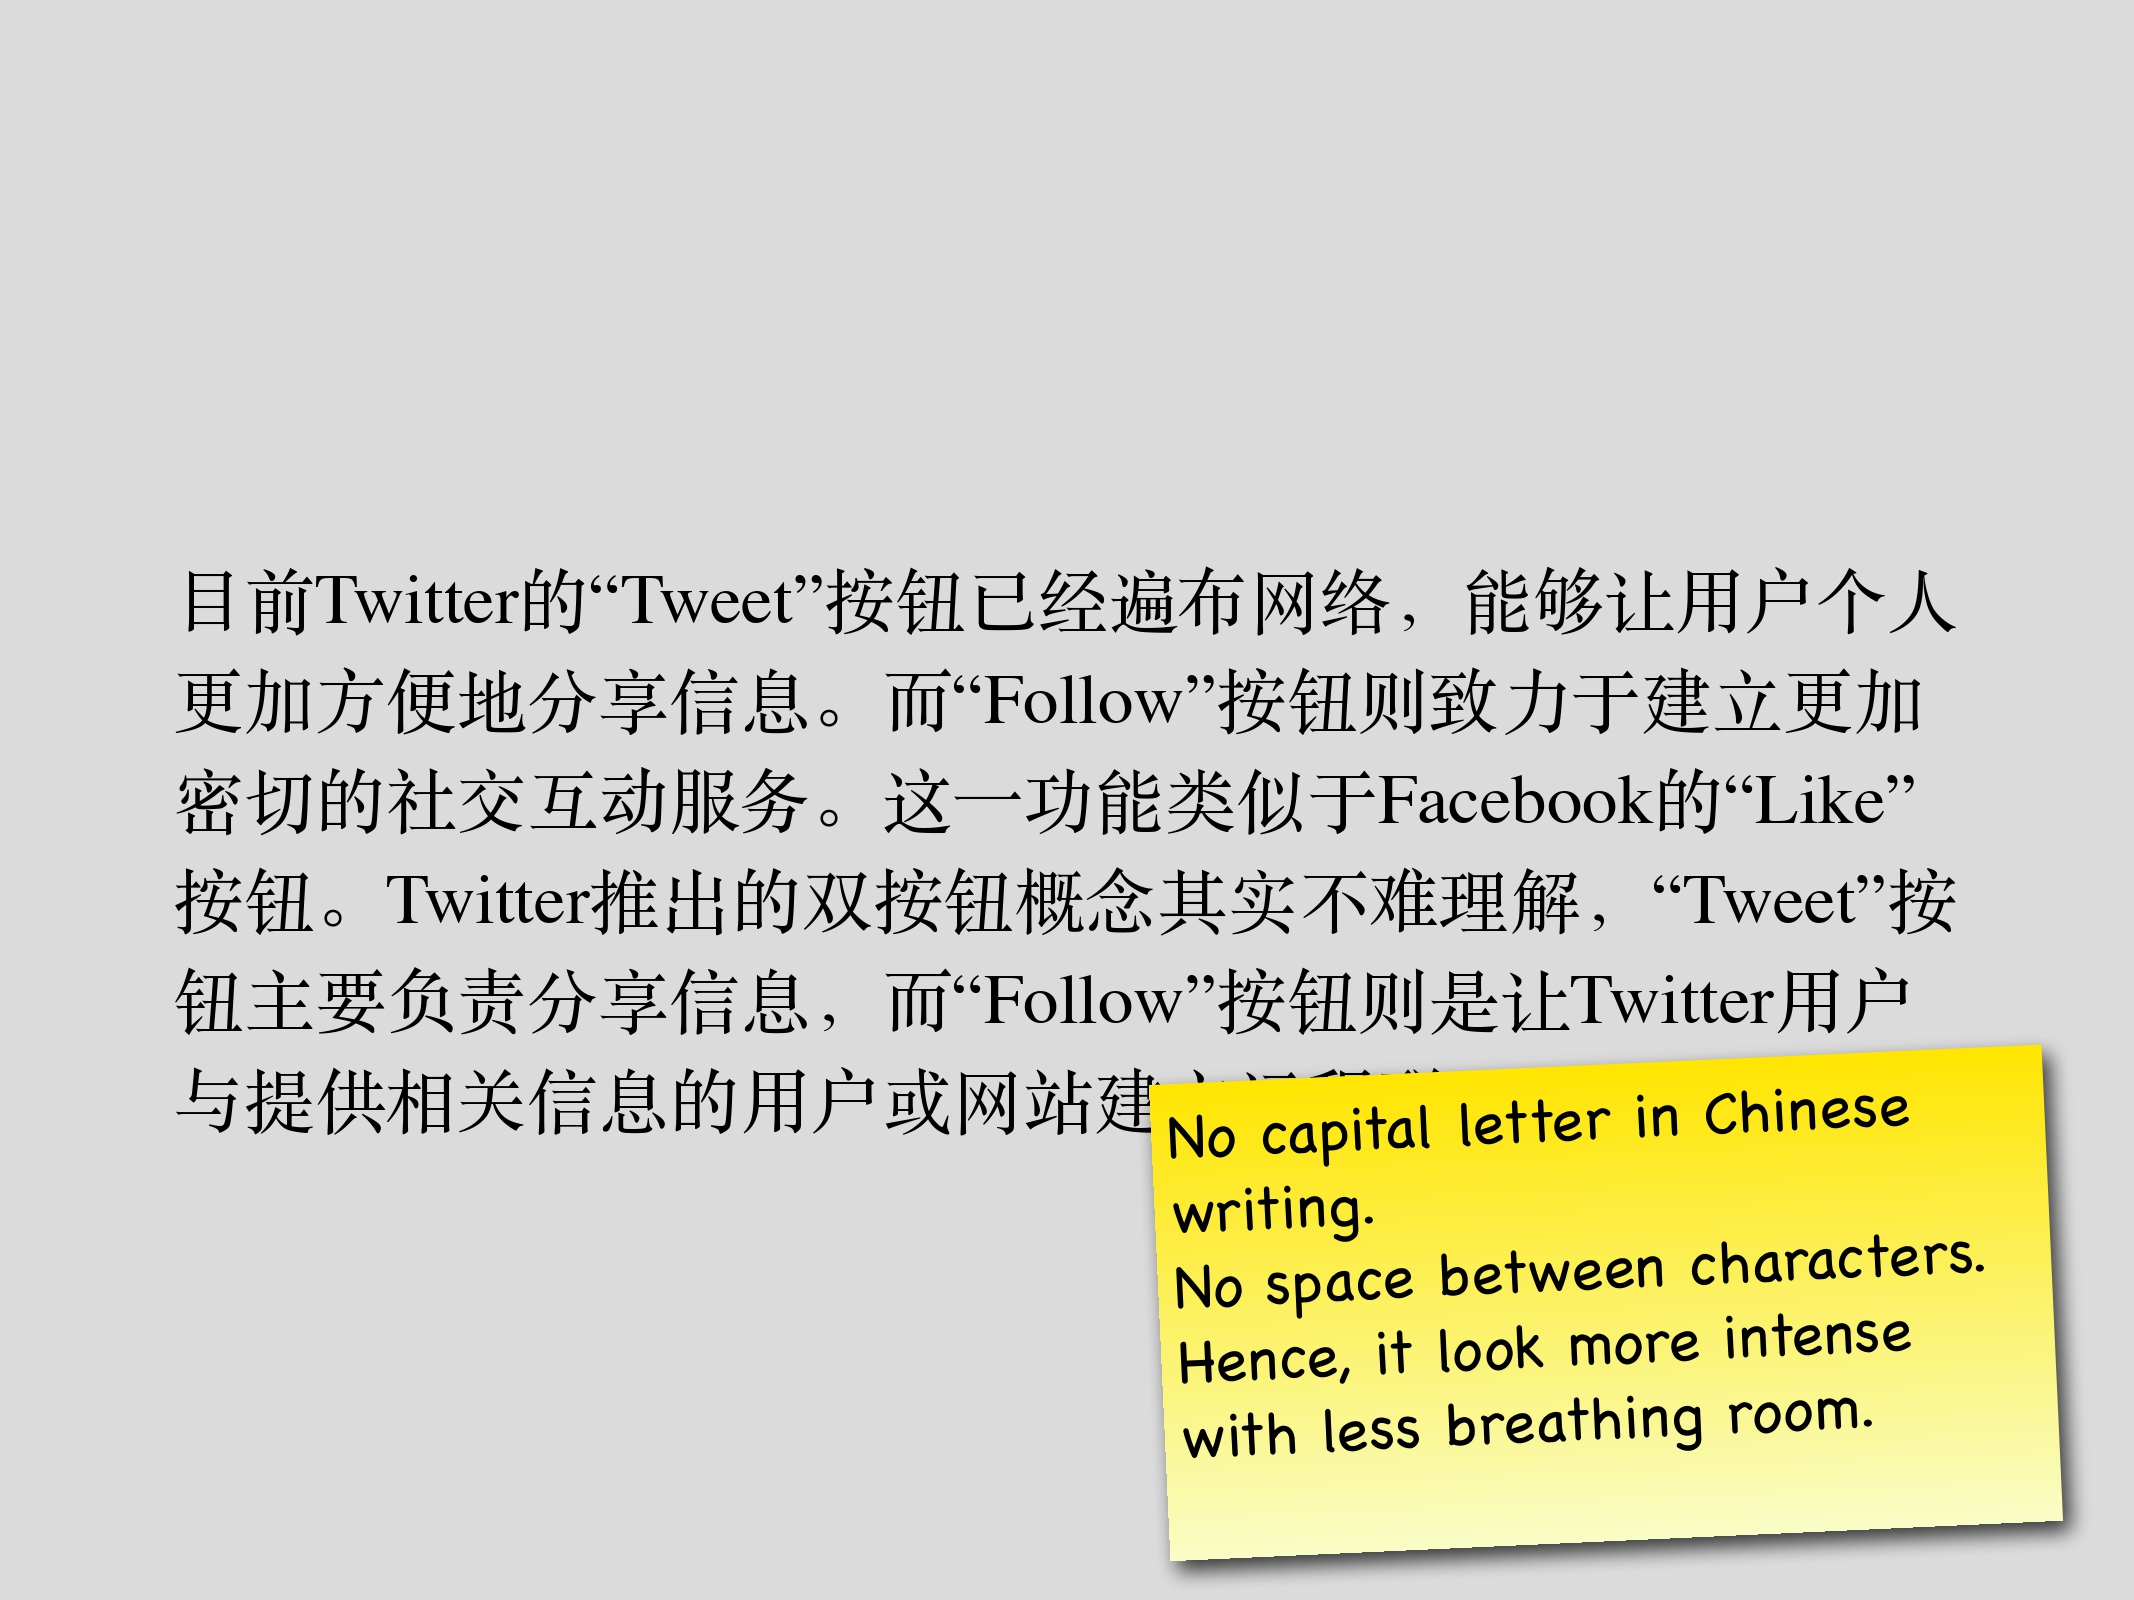 Chinese Web Design Patterns 2011_pages-to-jpg-0016.jpg